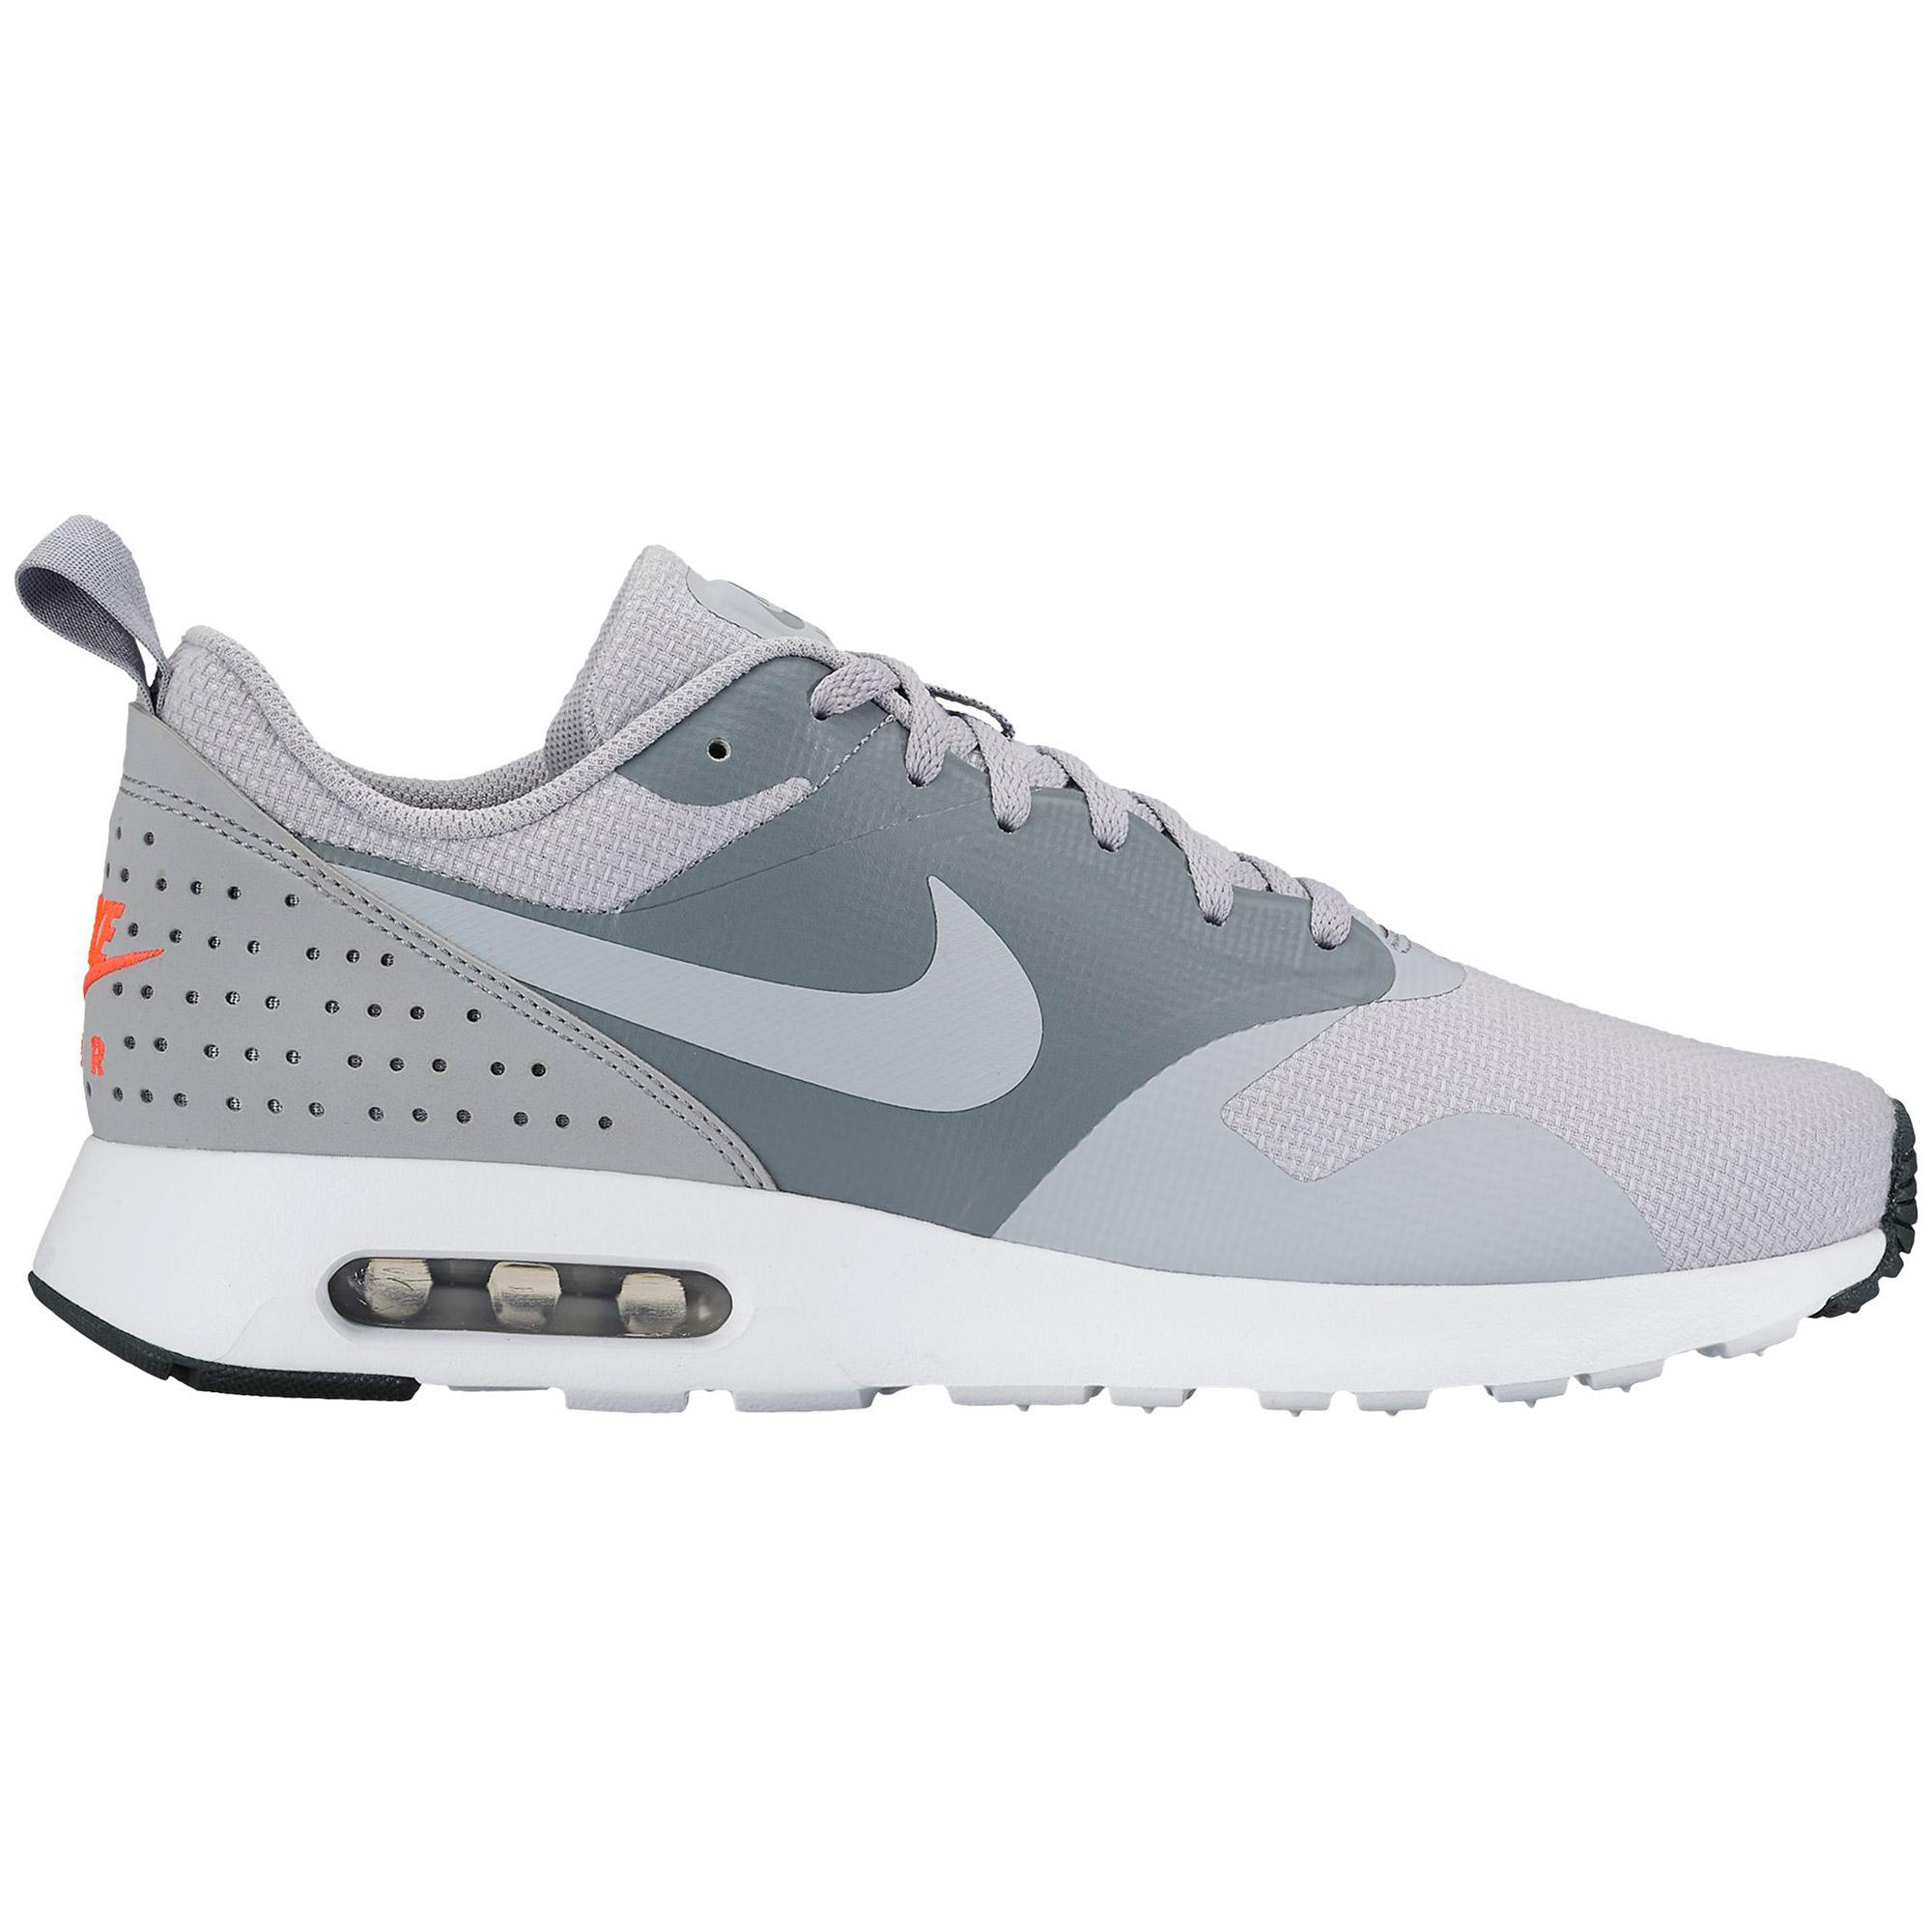 save off edfed 3c653 Nike Mens Air Max Tavas Special Edition Running Shoes - Wolf Grey -  Tennisnuts.com